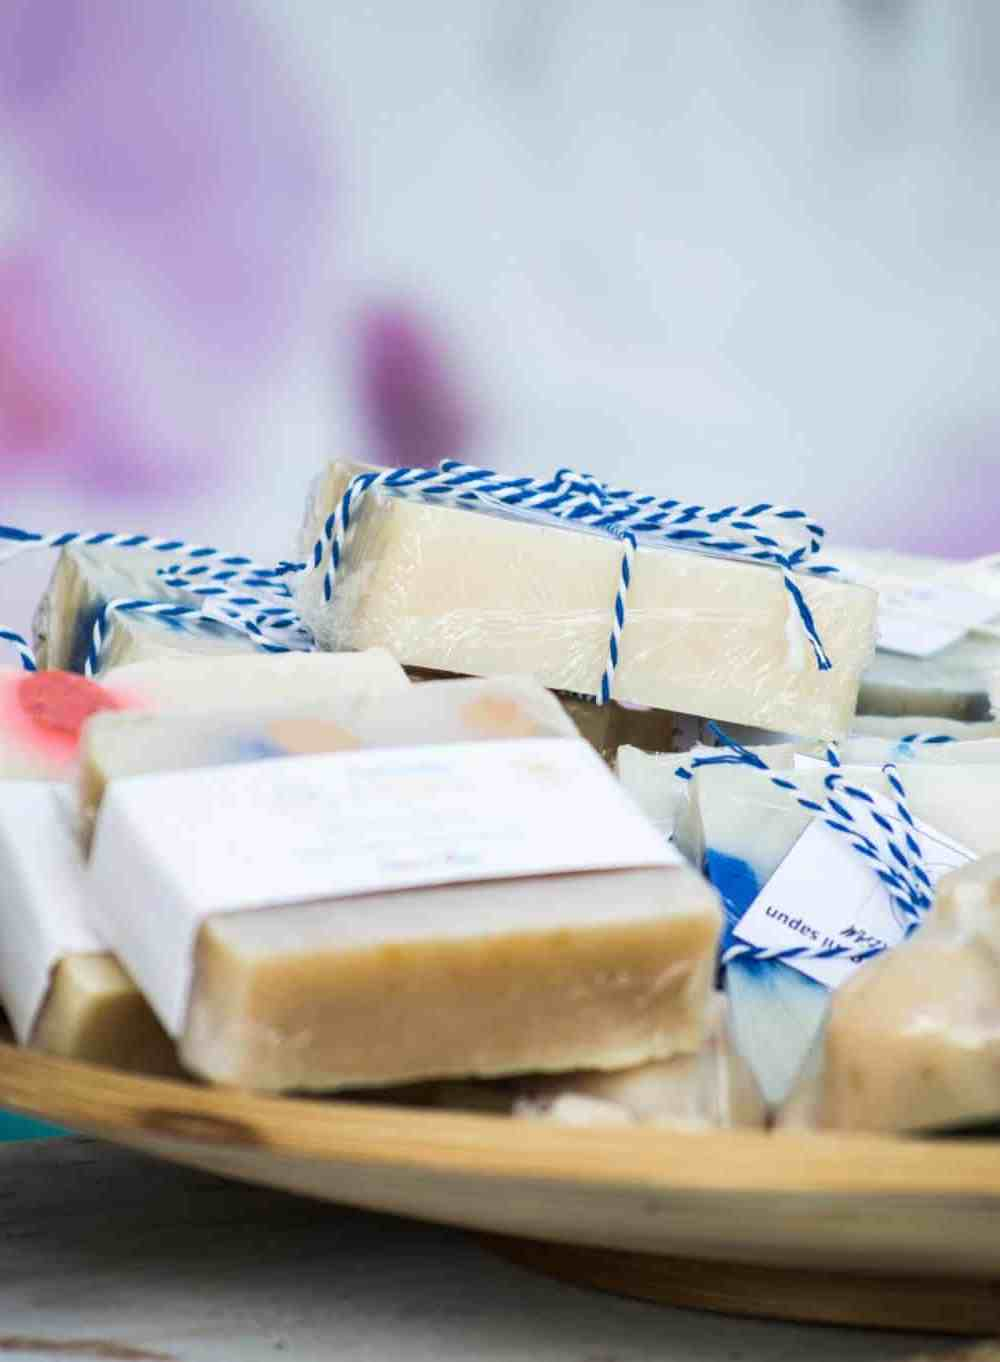 A photograph of homemade soap bars, which is thinking locally.